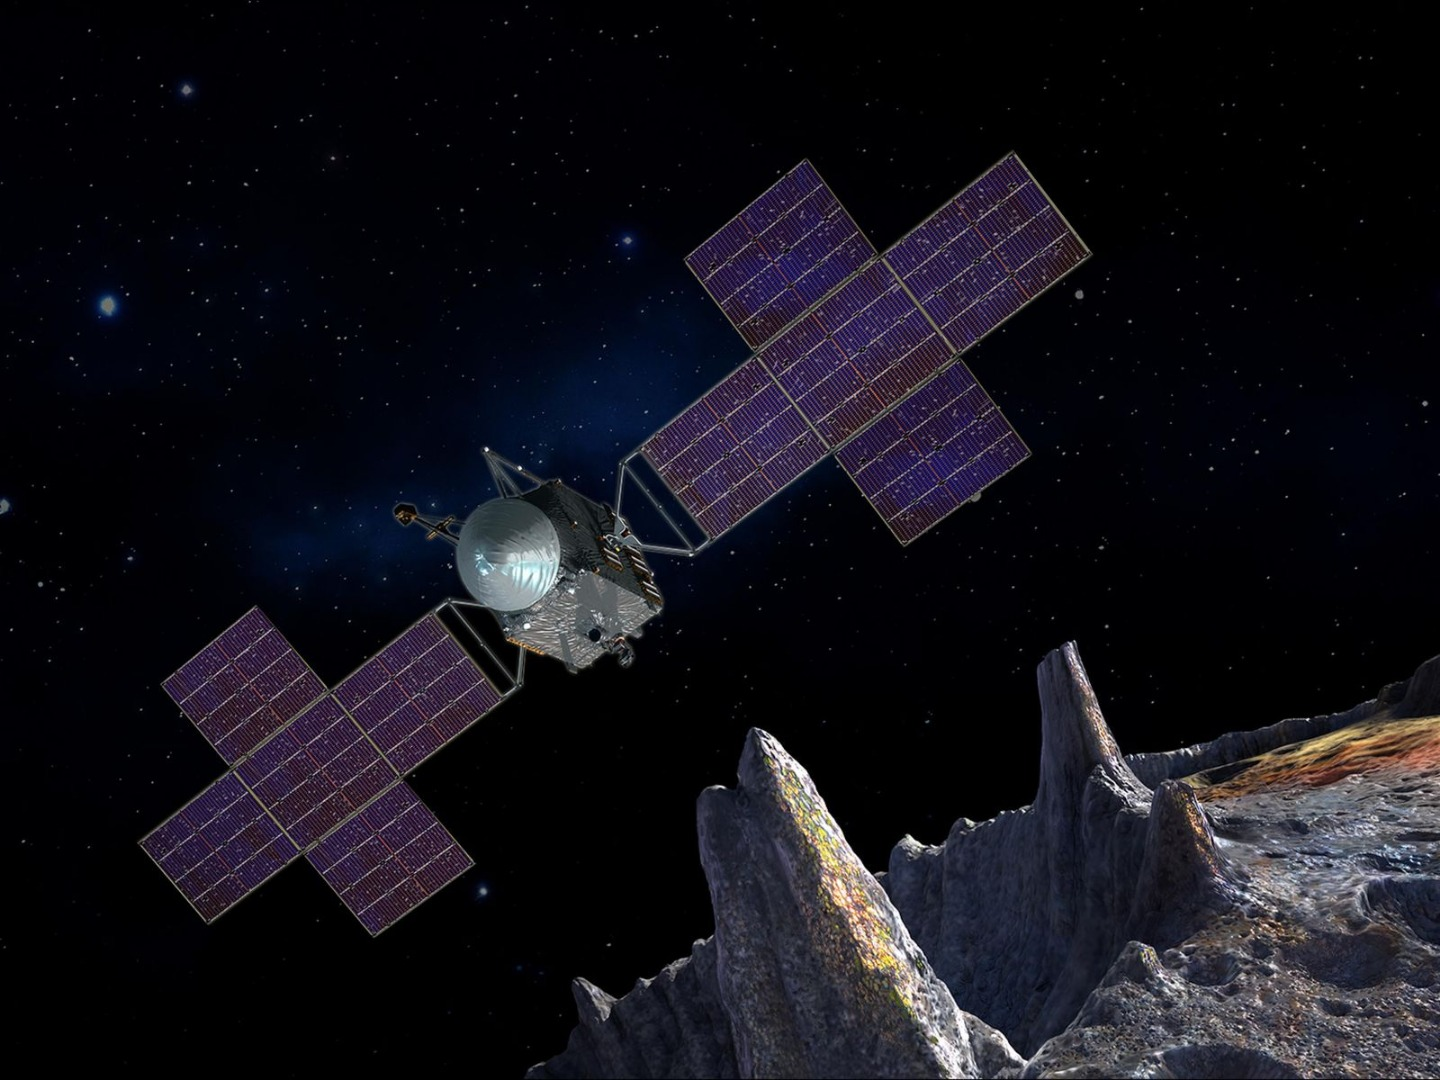 NASA gives go-ahead for mission to explore ancient planet core in asteroid belt